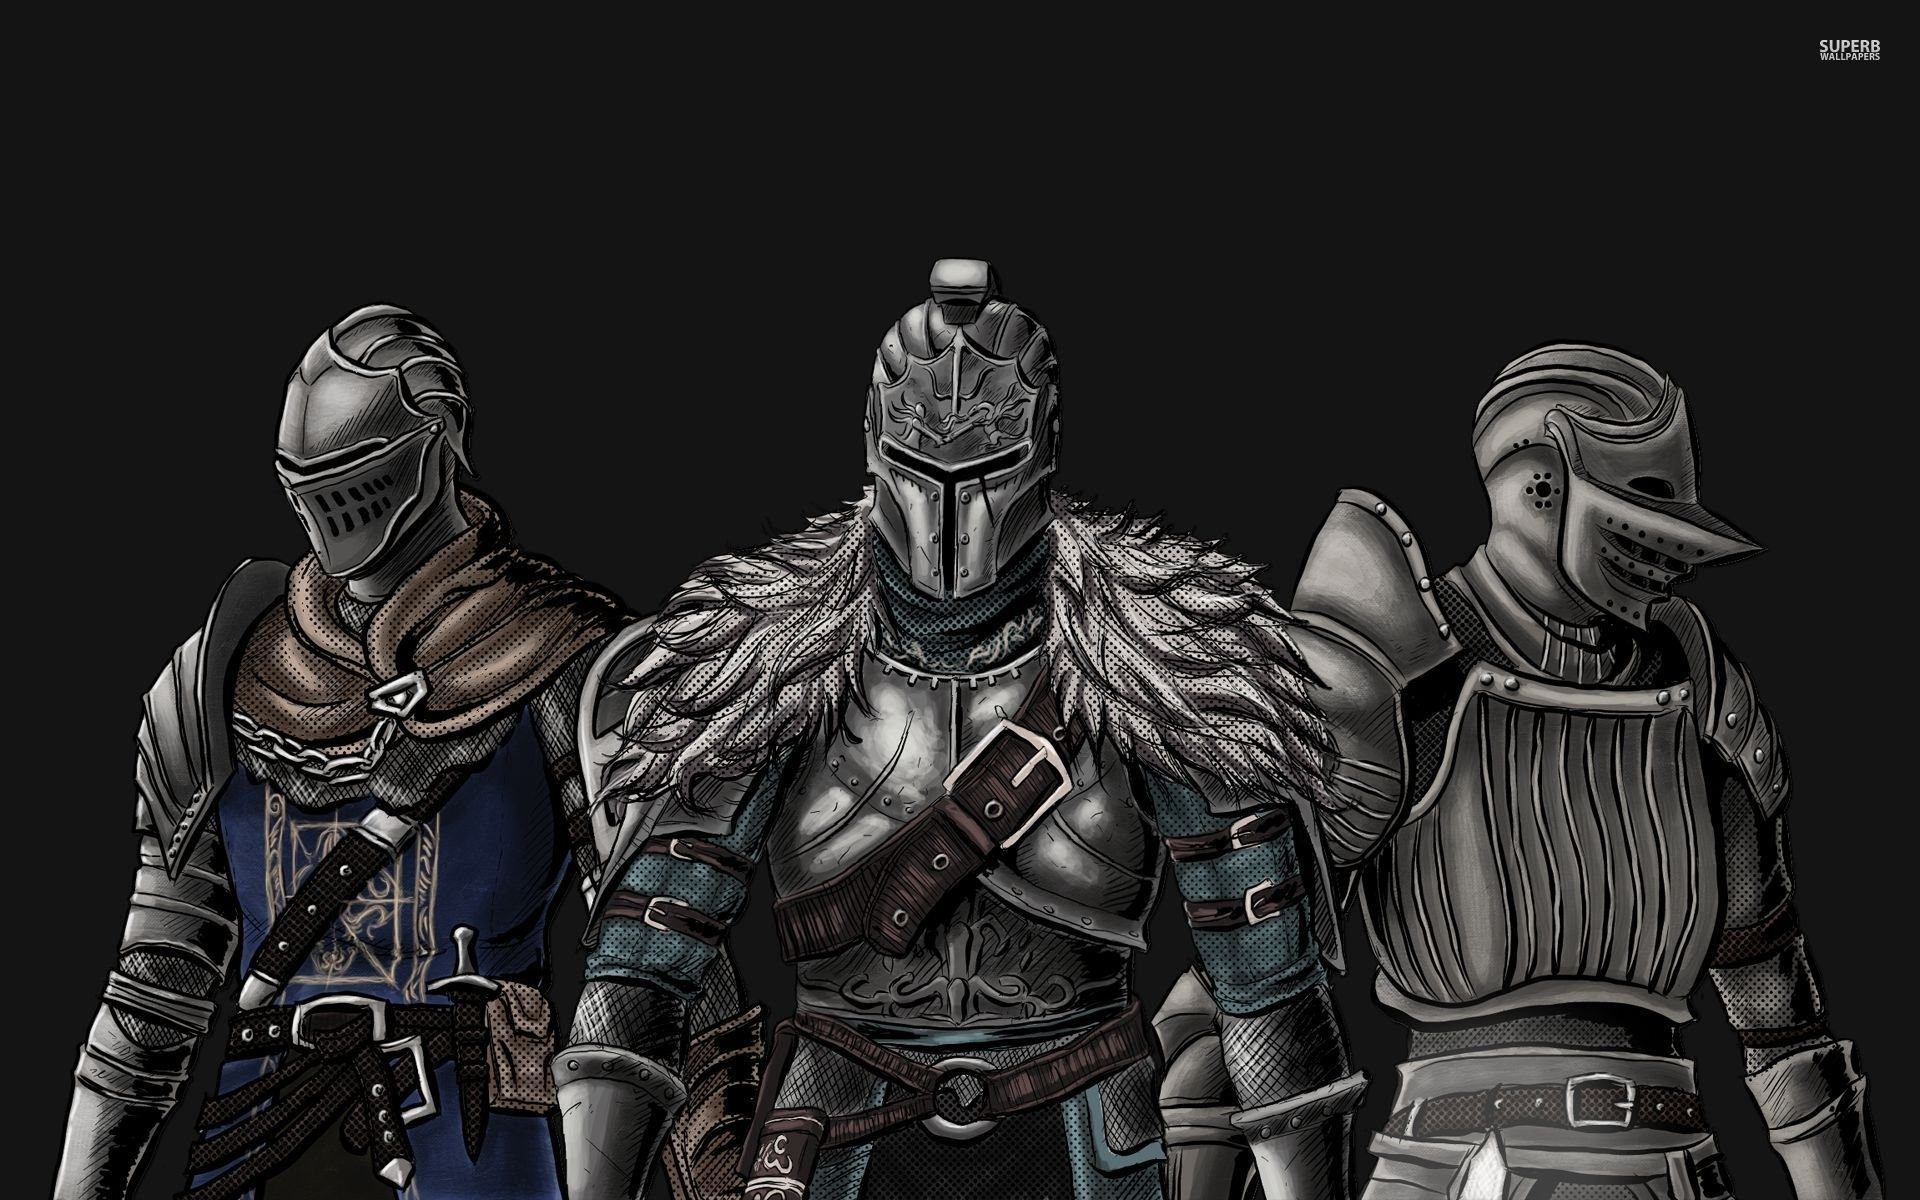 1920x1200 Dark Souls Knight Wallpaper 10 - 1920 X 1200